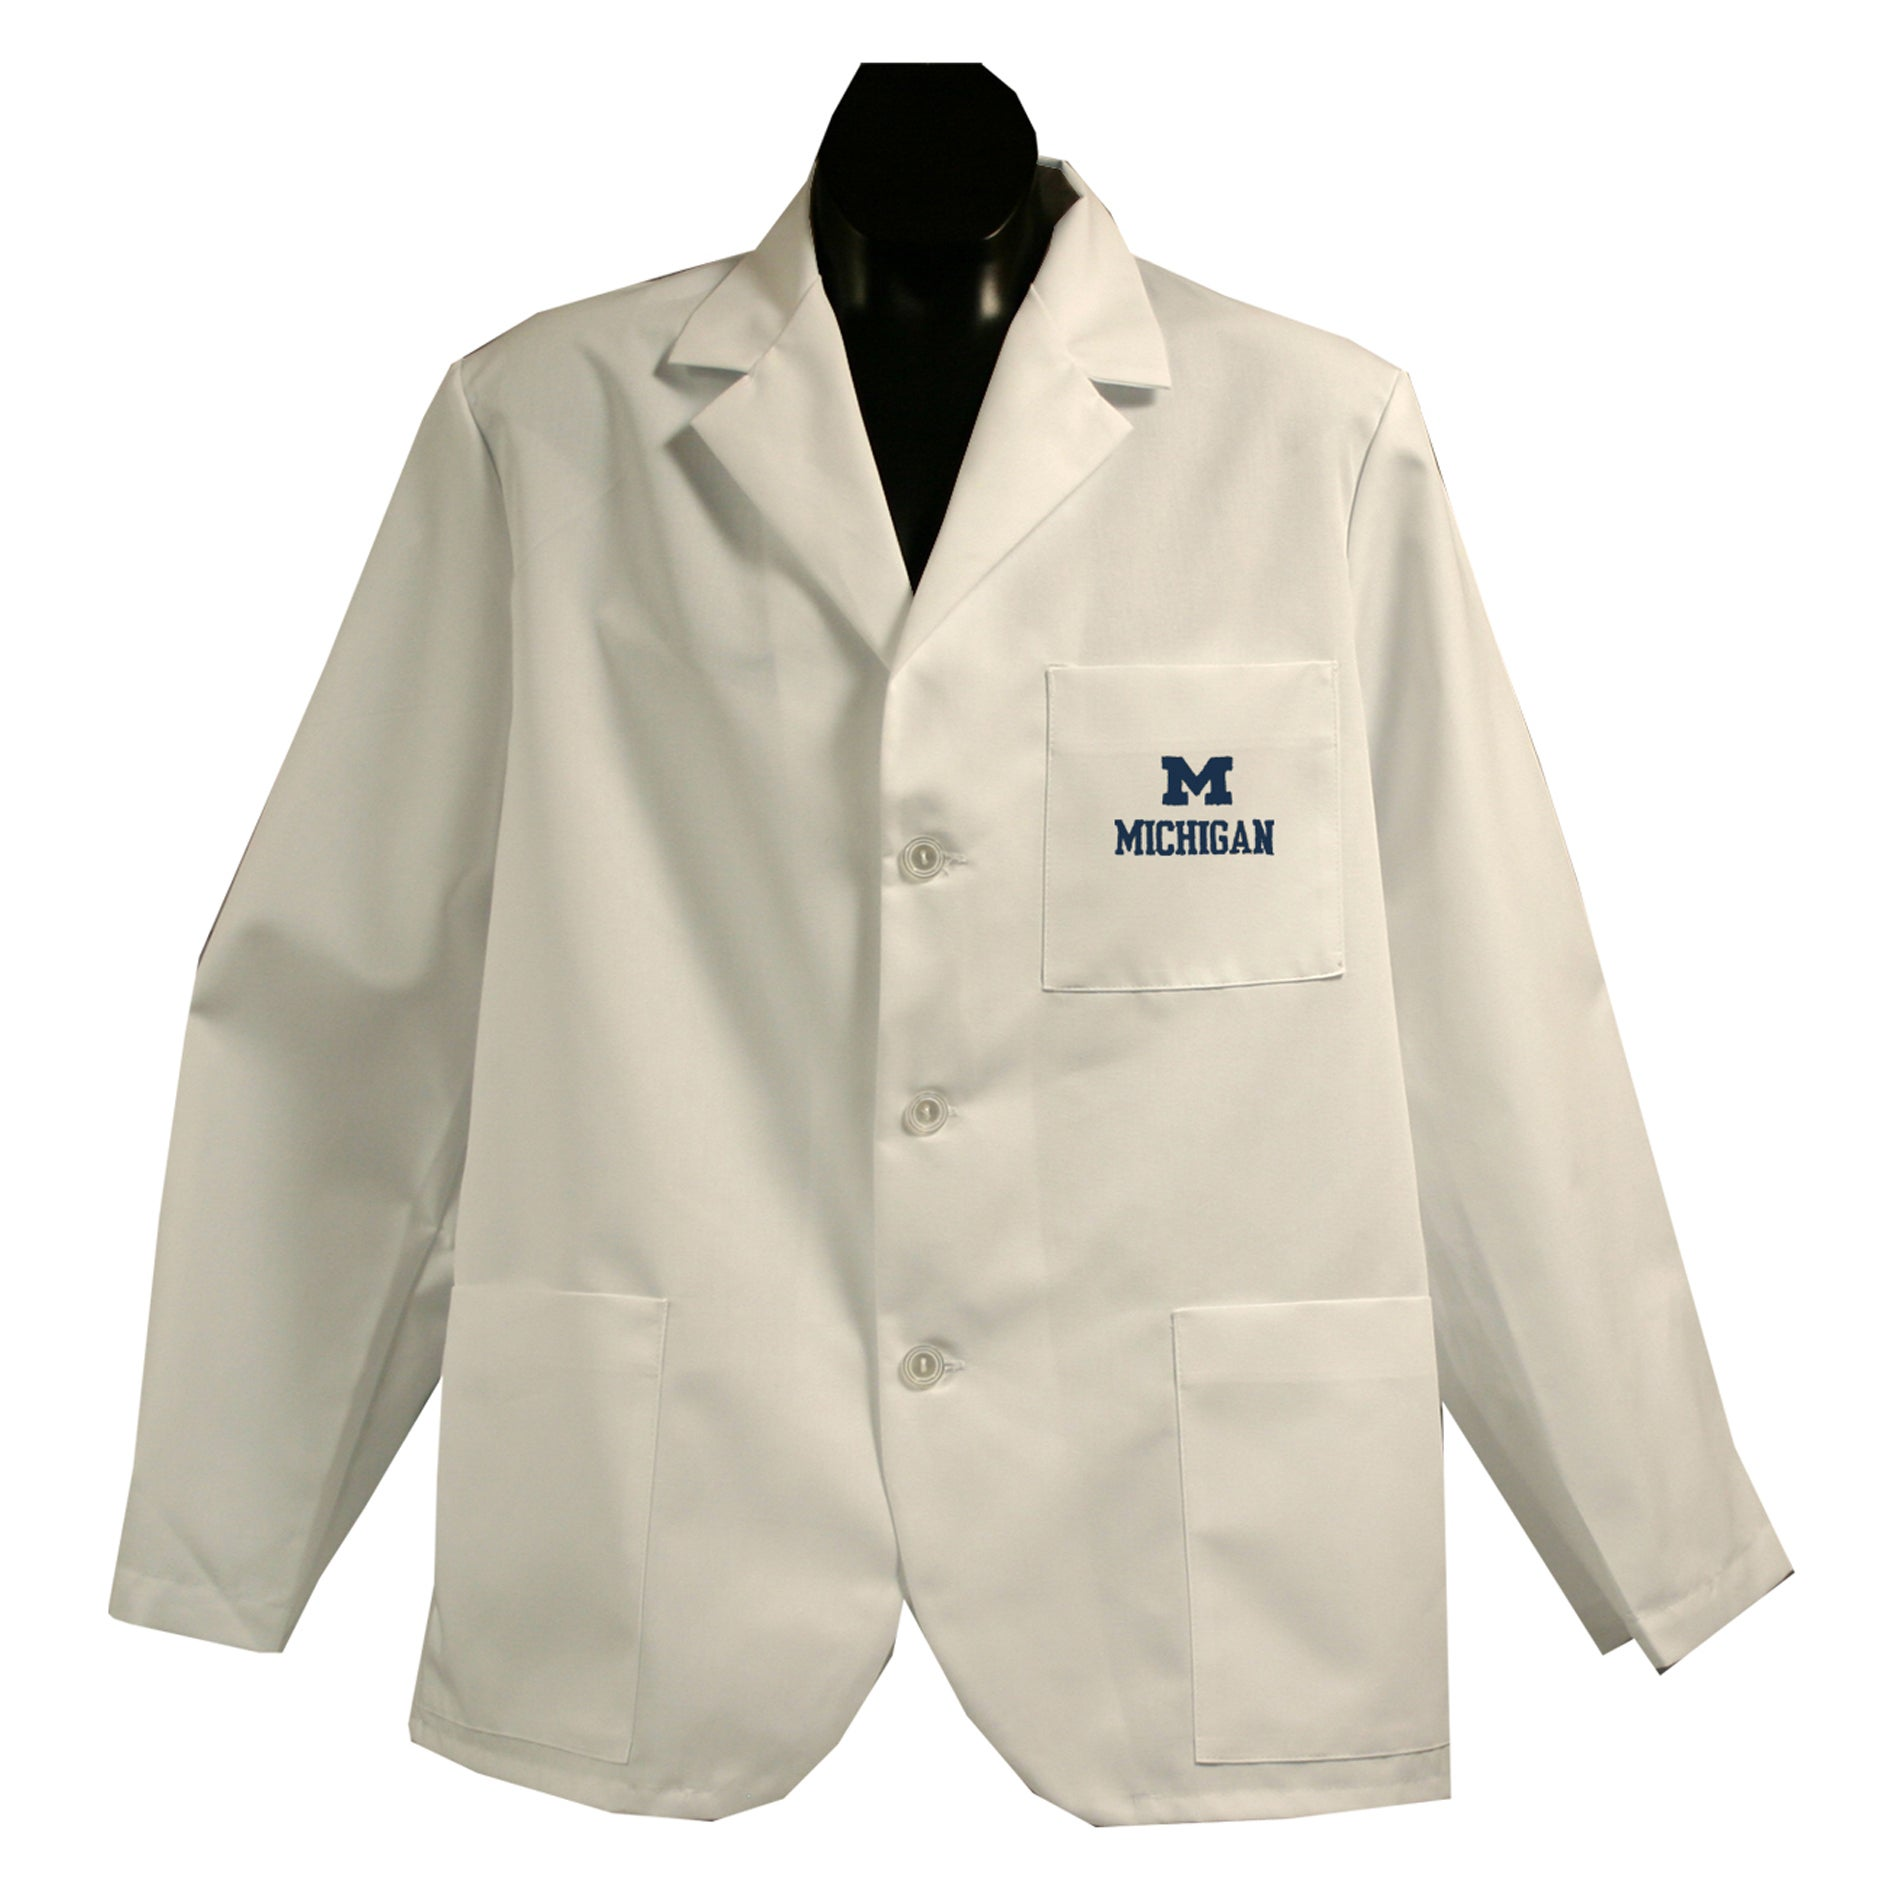 Gelscrubs Unisex NCAA Michigan Wolverines Short Labcoat - Thumbnail 0